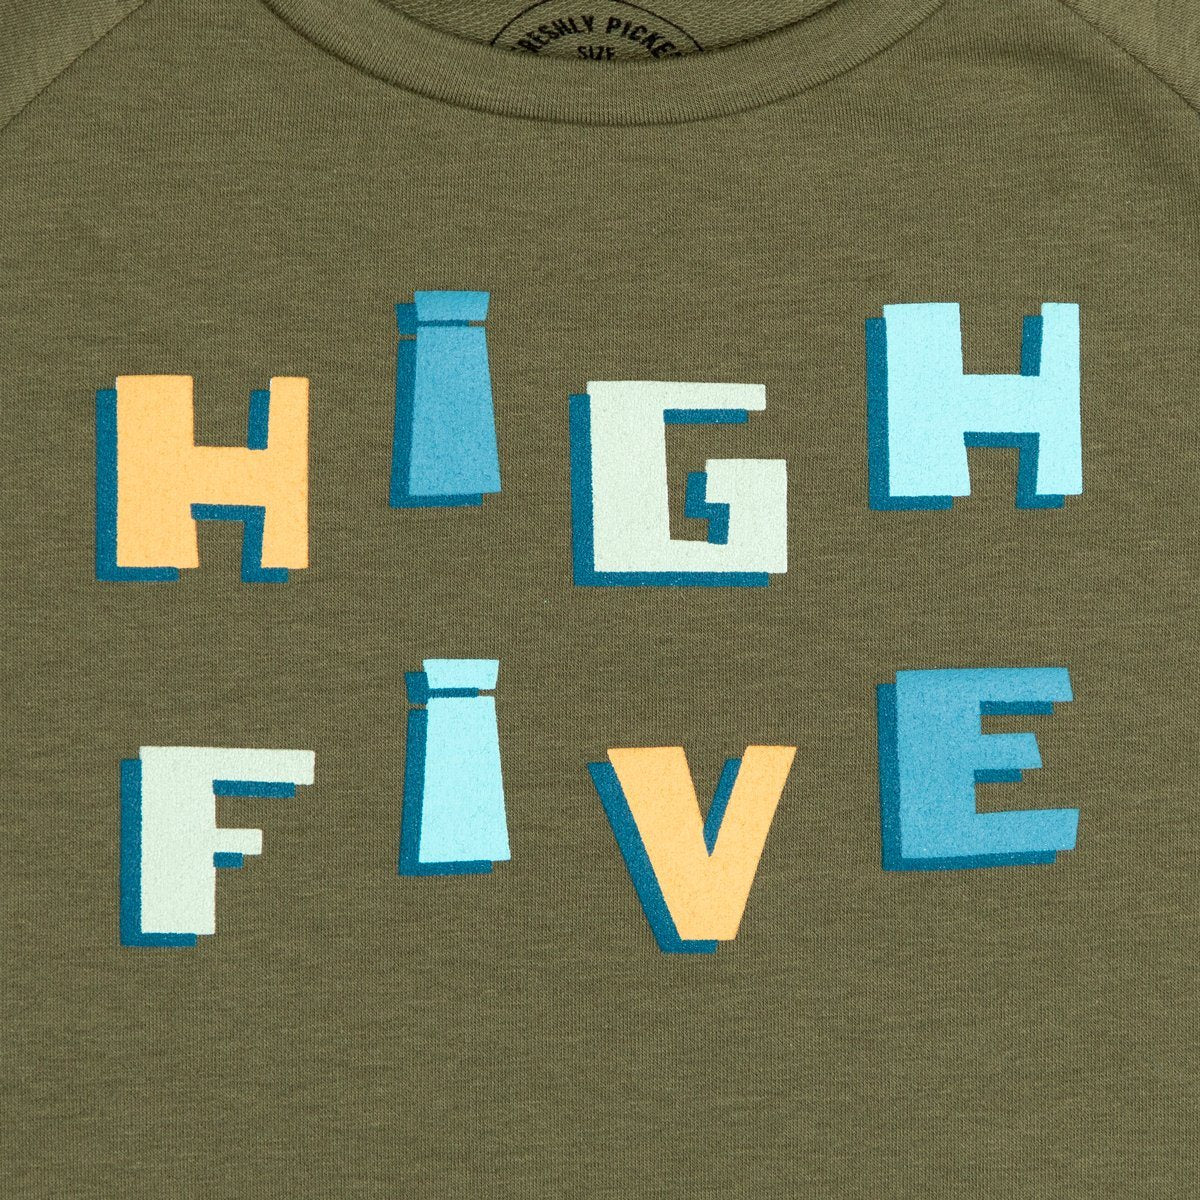 High Five Crew Sweatshirt Kids - Crew Sweatshirt Kids Clothing